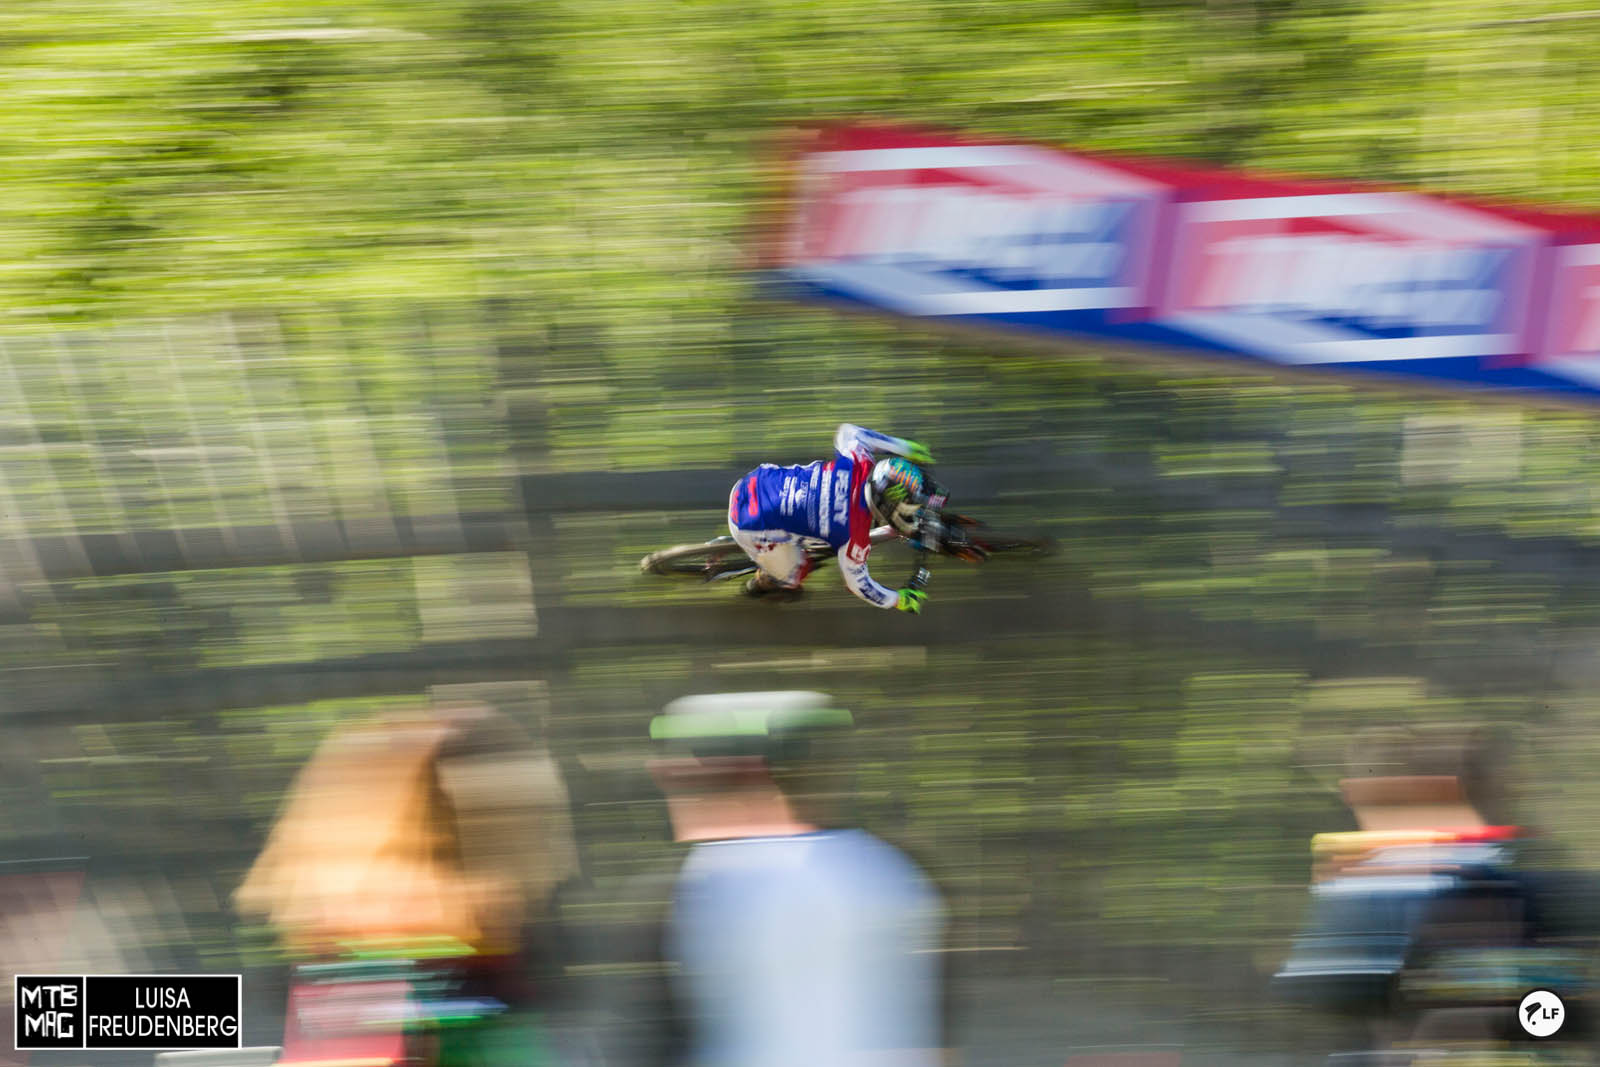 Peaty. Last time for him racing WC in Leogang